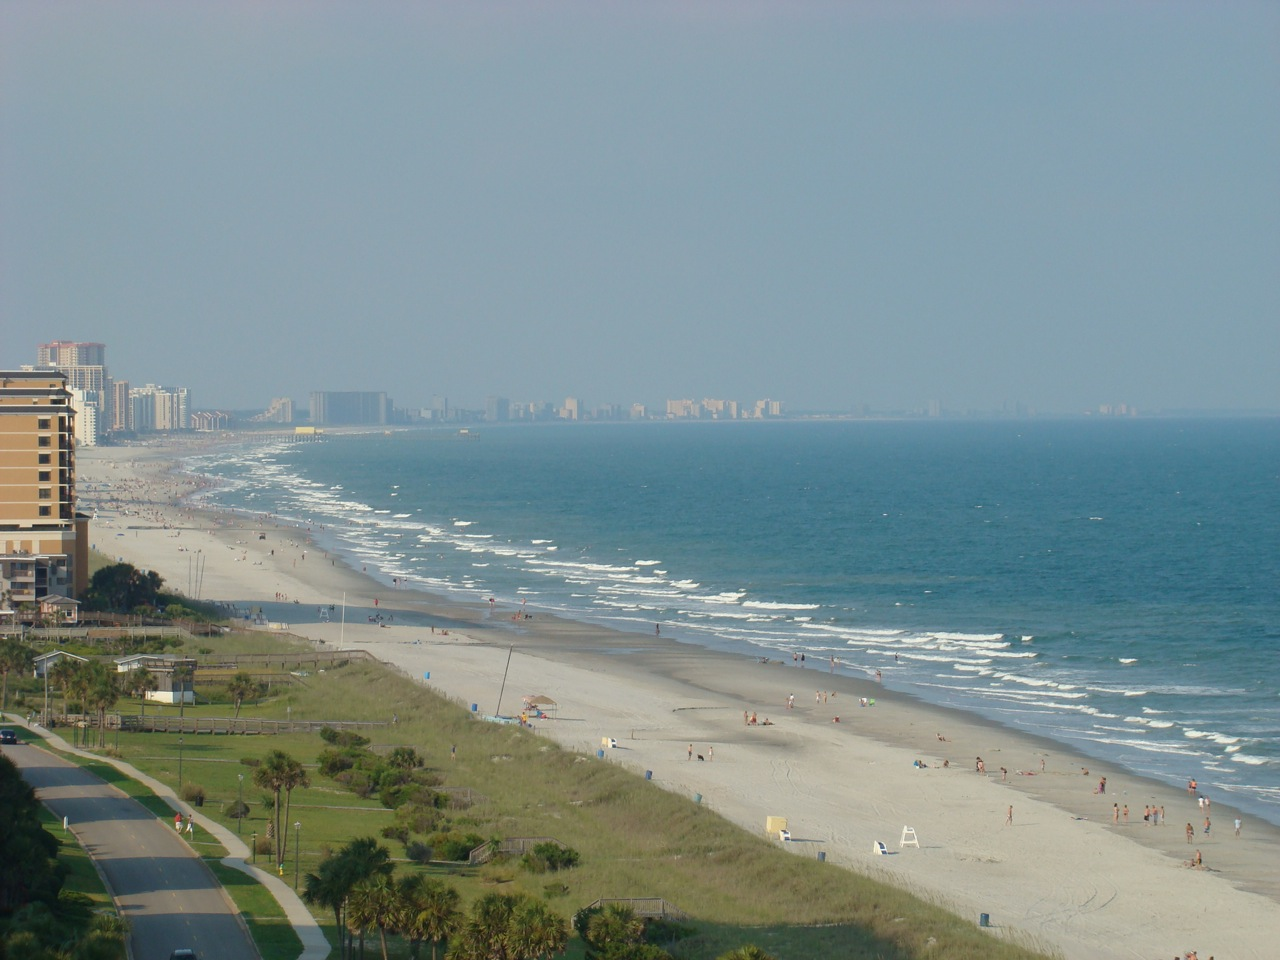 Download this View North Myrtle Beach picture